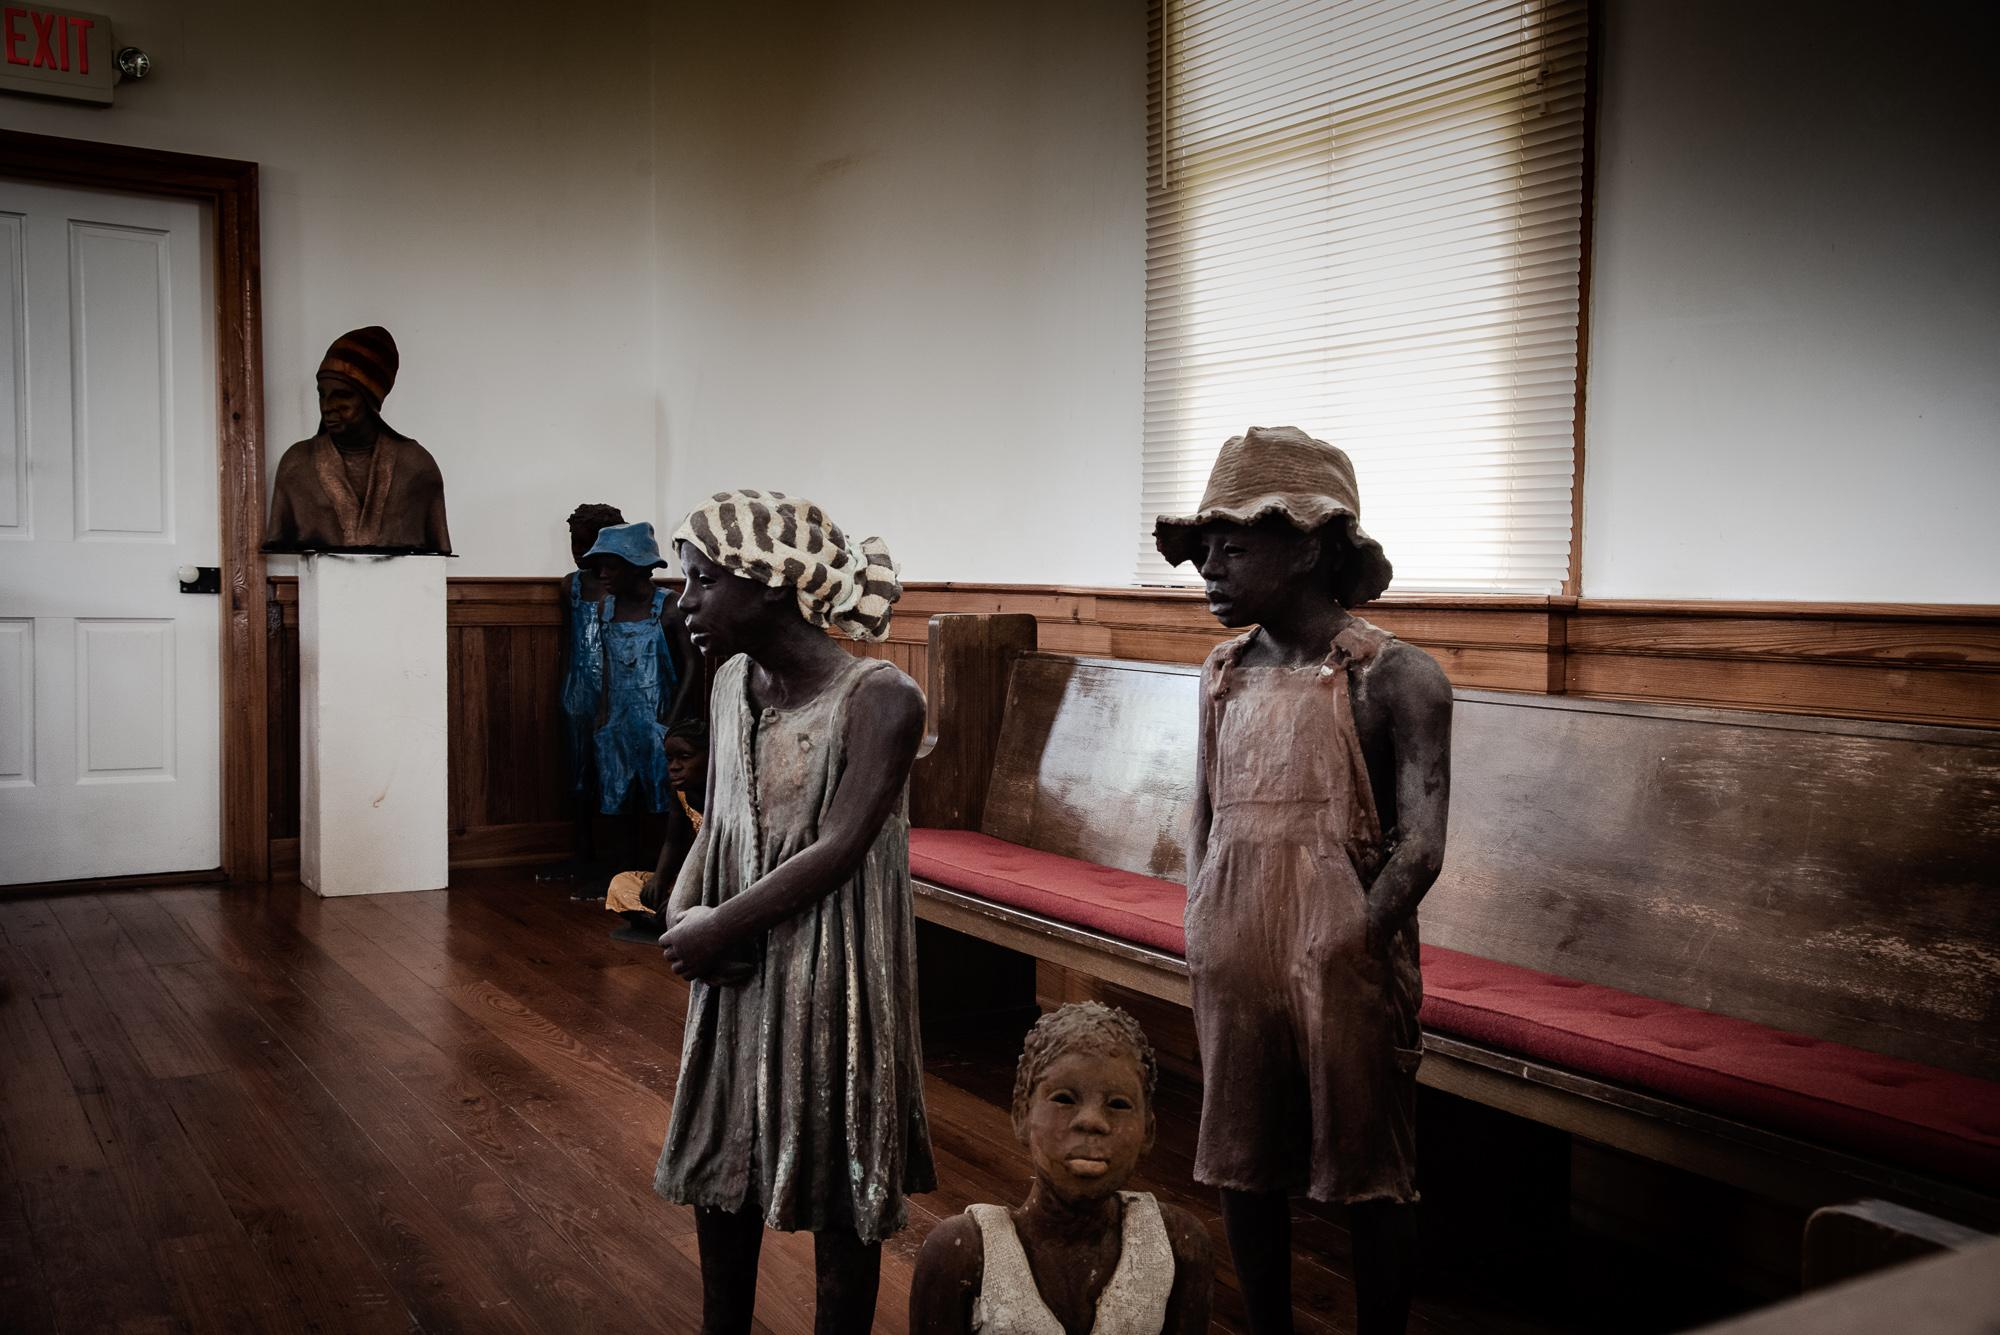 Statues, Whitney Plantation, Louisiana Created by Woodrow Nash, the life-sized clay statues are based on true stories of children enslaved on the plantation. Whitney Plantation was purchased by New Orleans trial attorney John Cummings in the 1990s and he set out to create the first museum solely focusing on the issue of slavery. Sengelese scholar Ibrahima Seck co-founded the museum and provided extensive research.